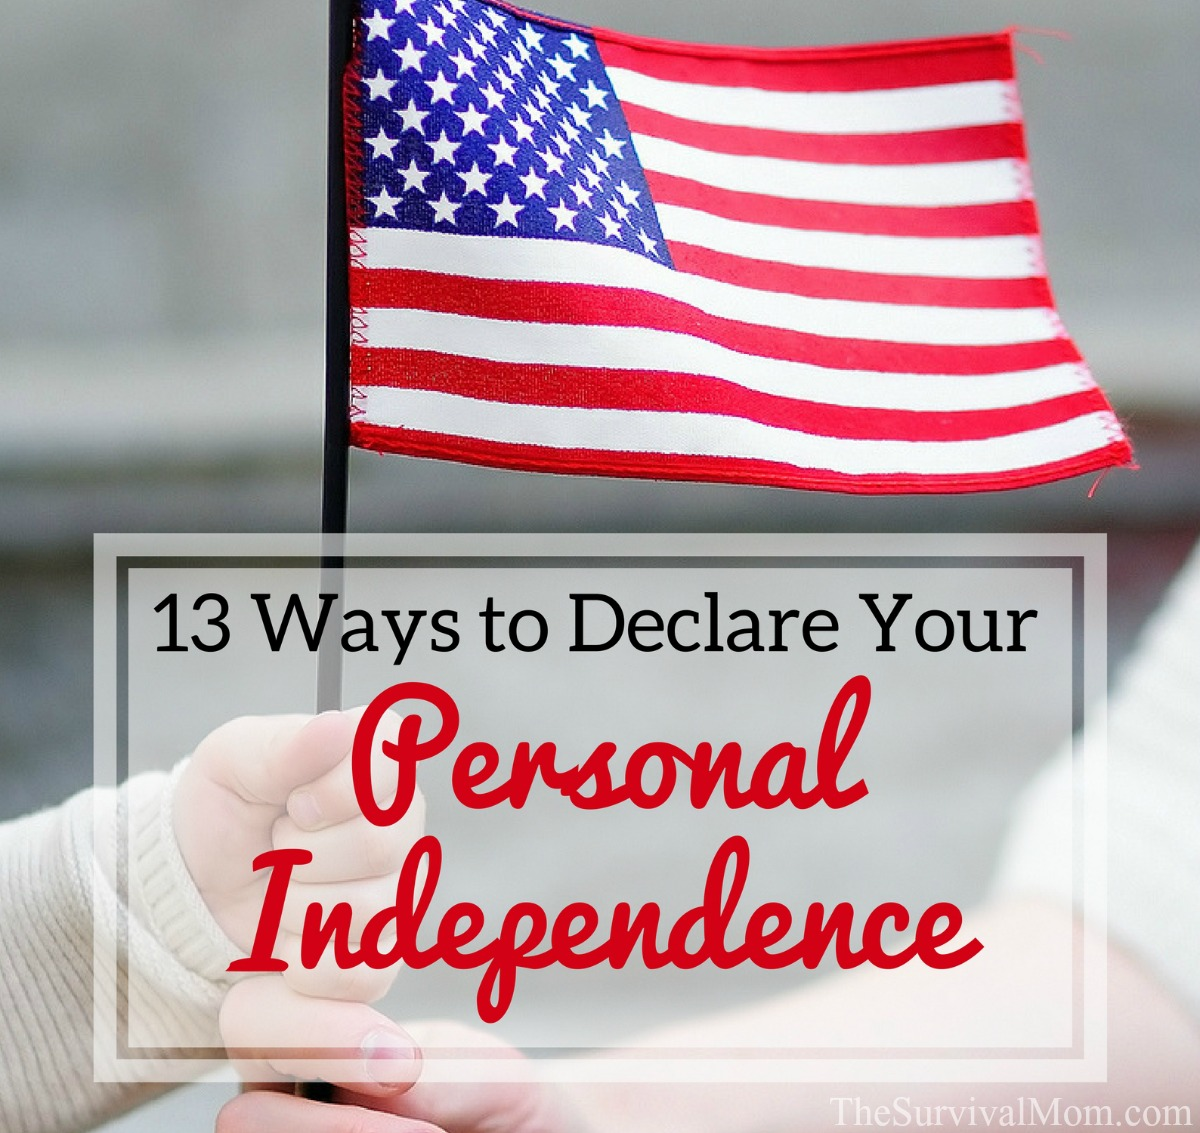 13 Ways to Declare Your Personal Independence via The Survival Mom